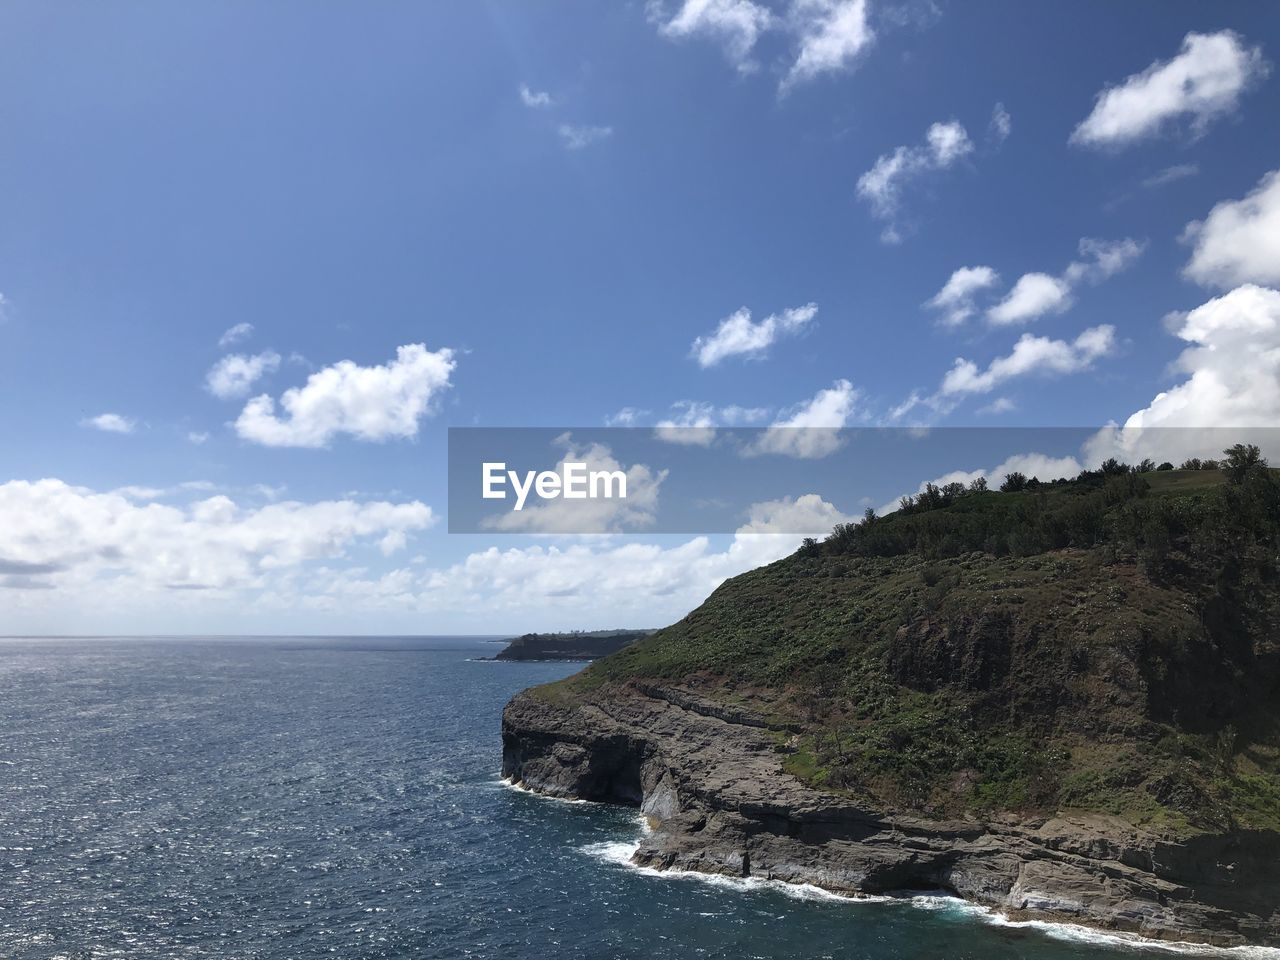 sky, sea, water, scenics - nature, beauty in nature, cloud - sky, horizon, tranquility, tranquil scene, horizon over water, nature, land, no people, day, rock, idyllic, blue, beach, waterfront, outdoors, rocky coastline